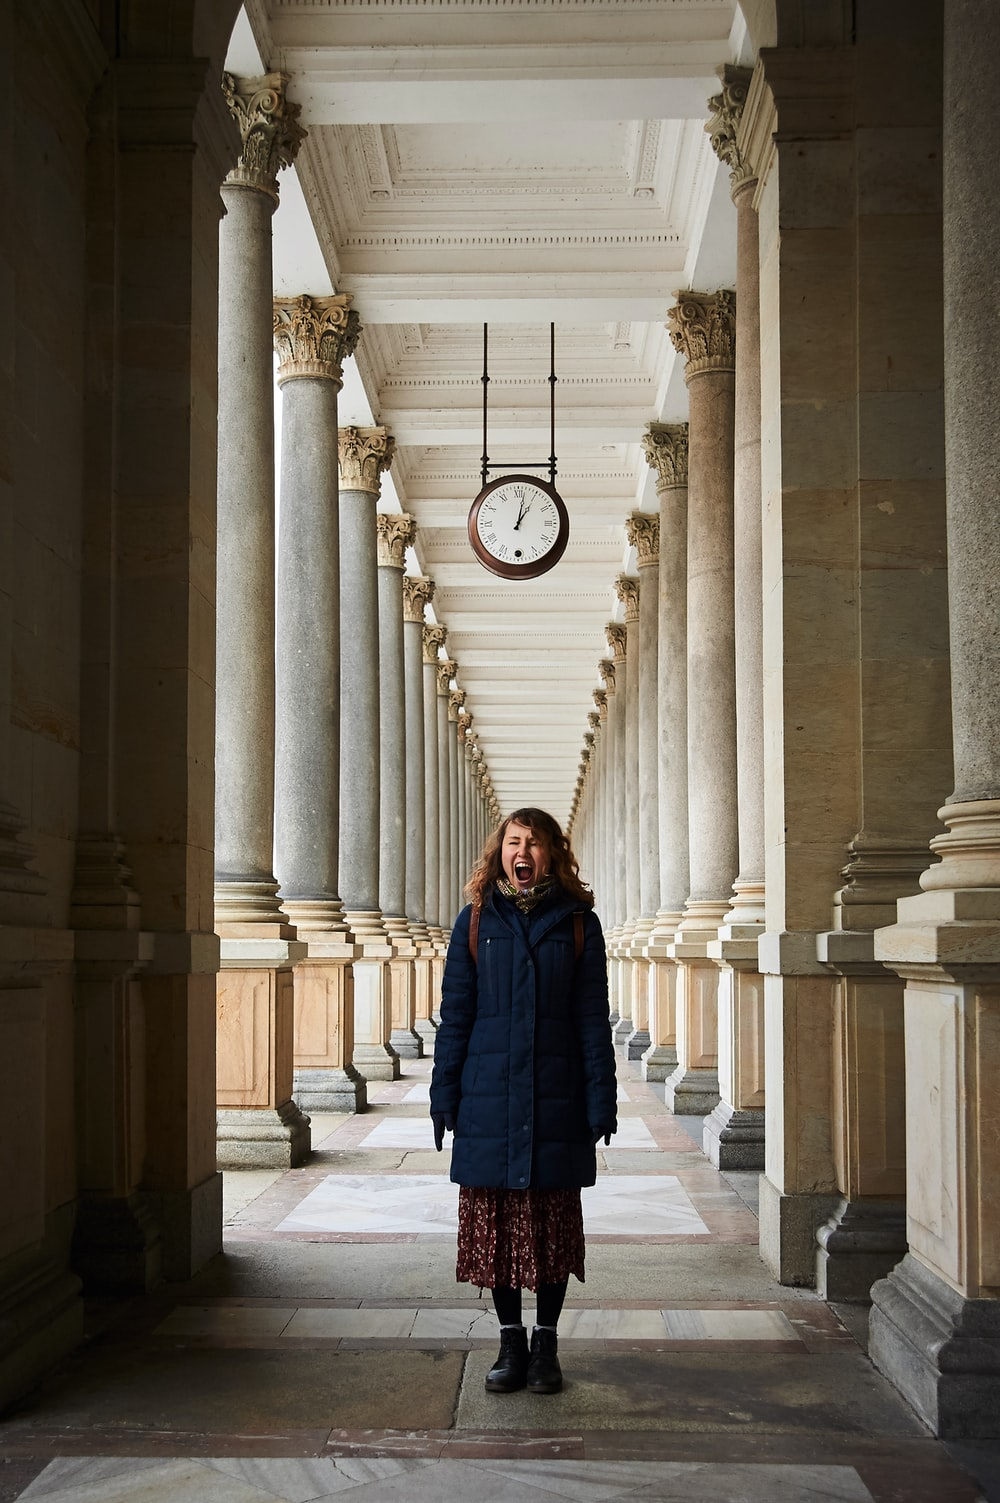 woman in blue coat standing near white concrete pillar during daytime